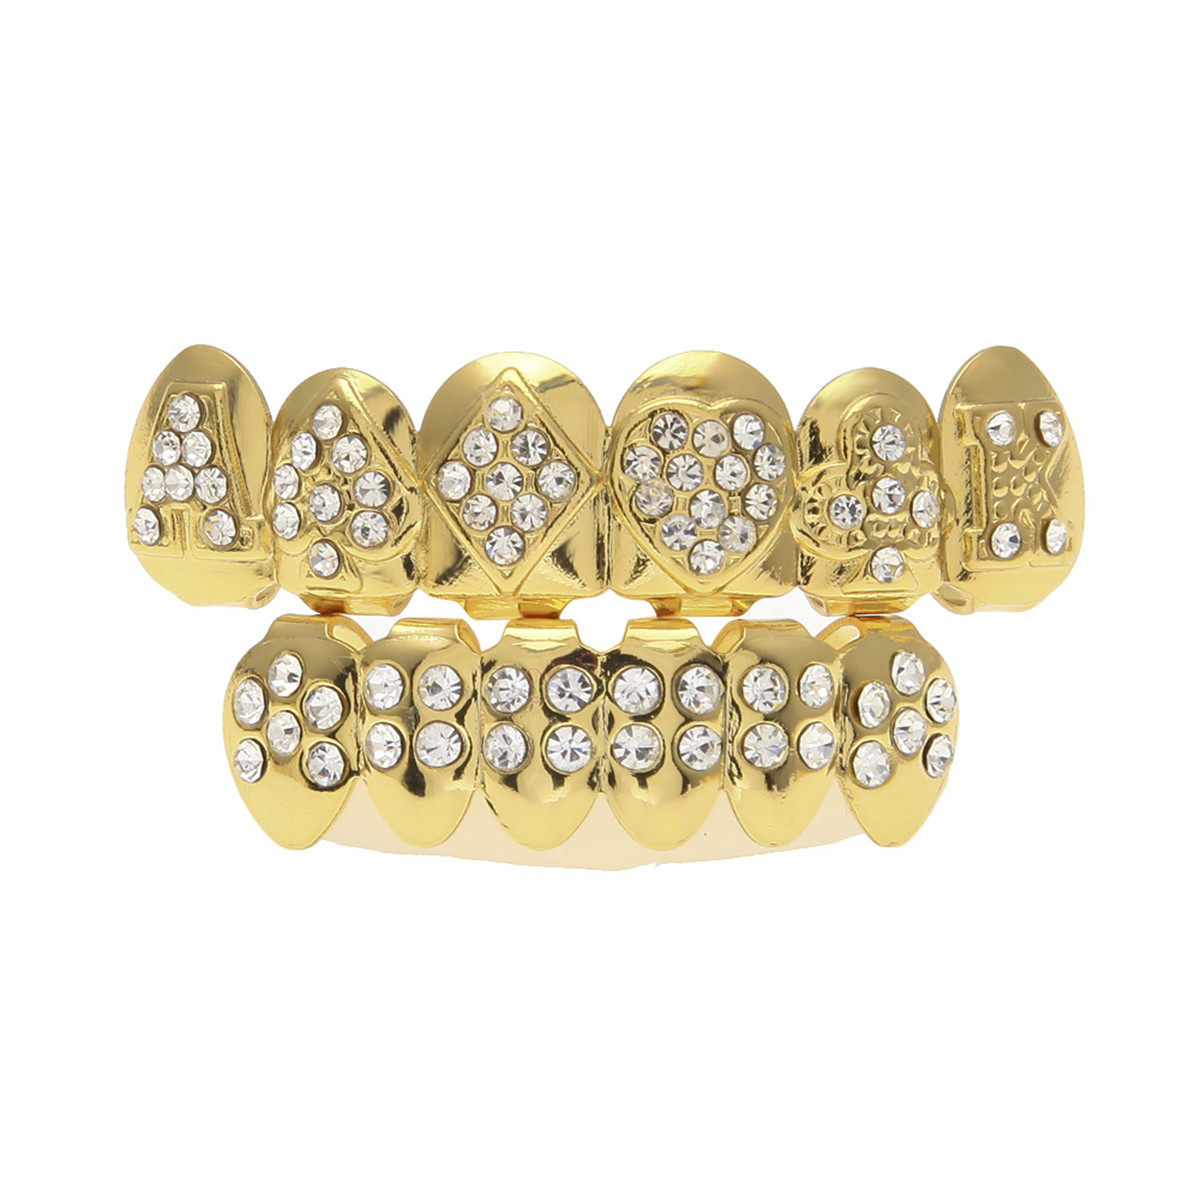 Gold-Plated-Tooth-Grill-Set-Hip-Hop-Diamond-Teeth-Custom-Mouth-Cap-Top-Bottom thumbnail 7